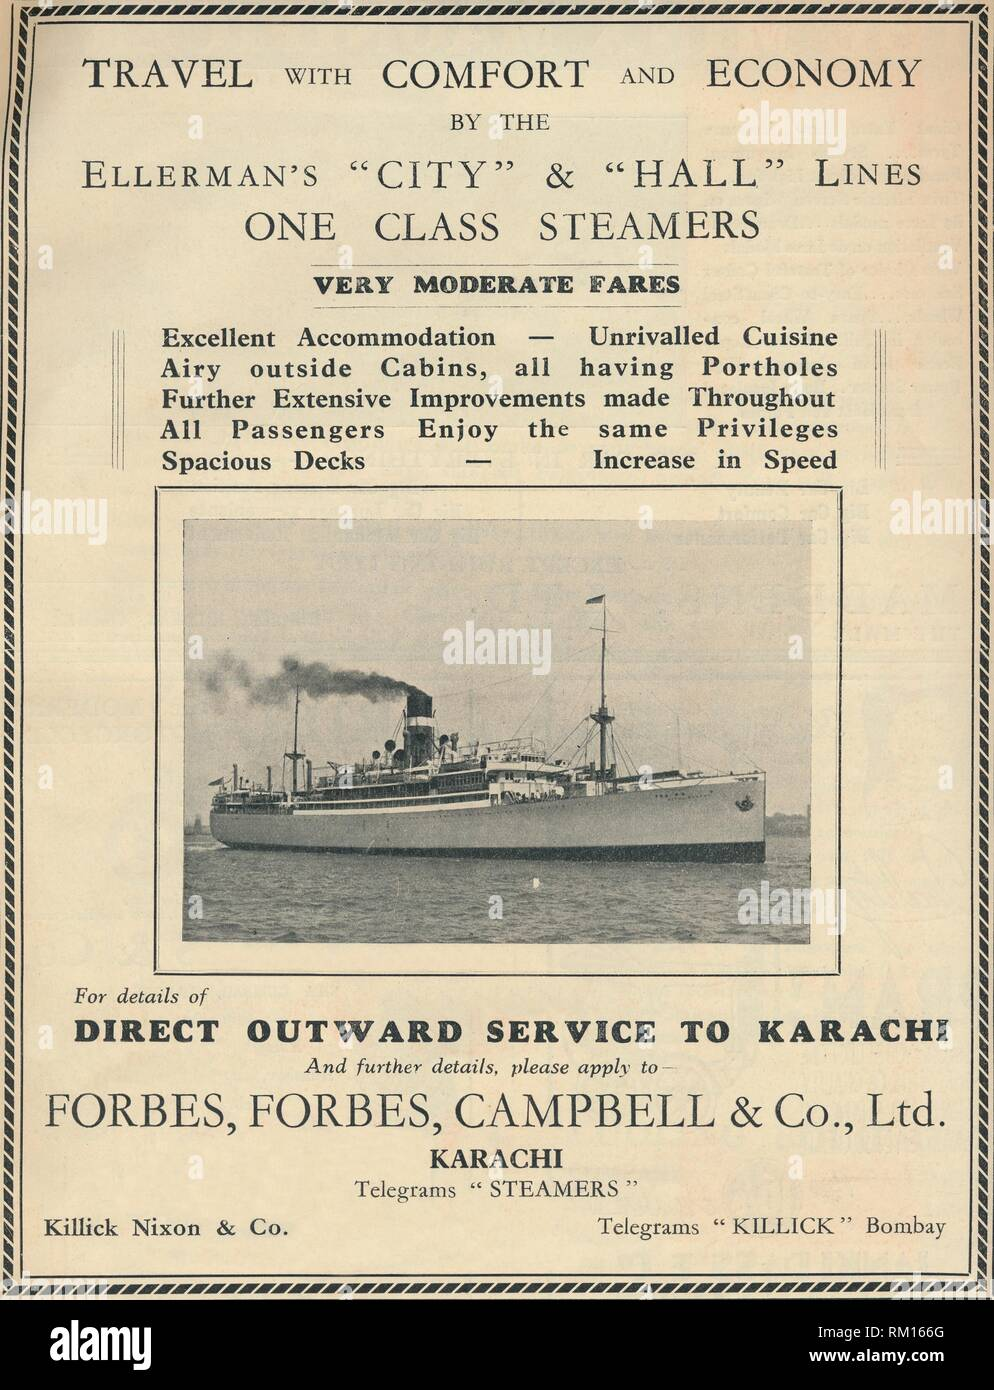 """Advertisement for Ellerman's steamers, 1936. 'Travel with Comfort and Economy by the Ellerman's """"City"""" & """"Hall"""" Lines One Class Steamers'. Ellerman Lines steamship company advertising travel to India, offering cabins with portholes, and a service in which 'all passengers enjoy the same privileges'. From """"The Civil and Military Gazette"""" Annual, 1936. [India, 1936] - Stock Image"""